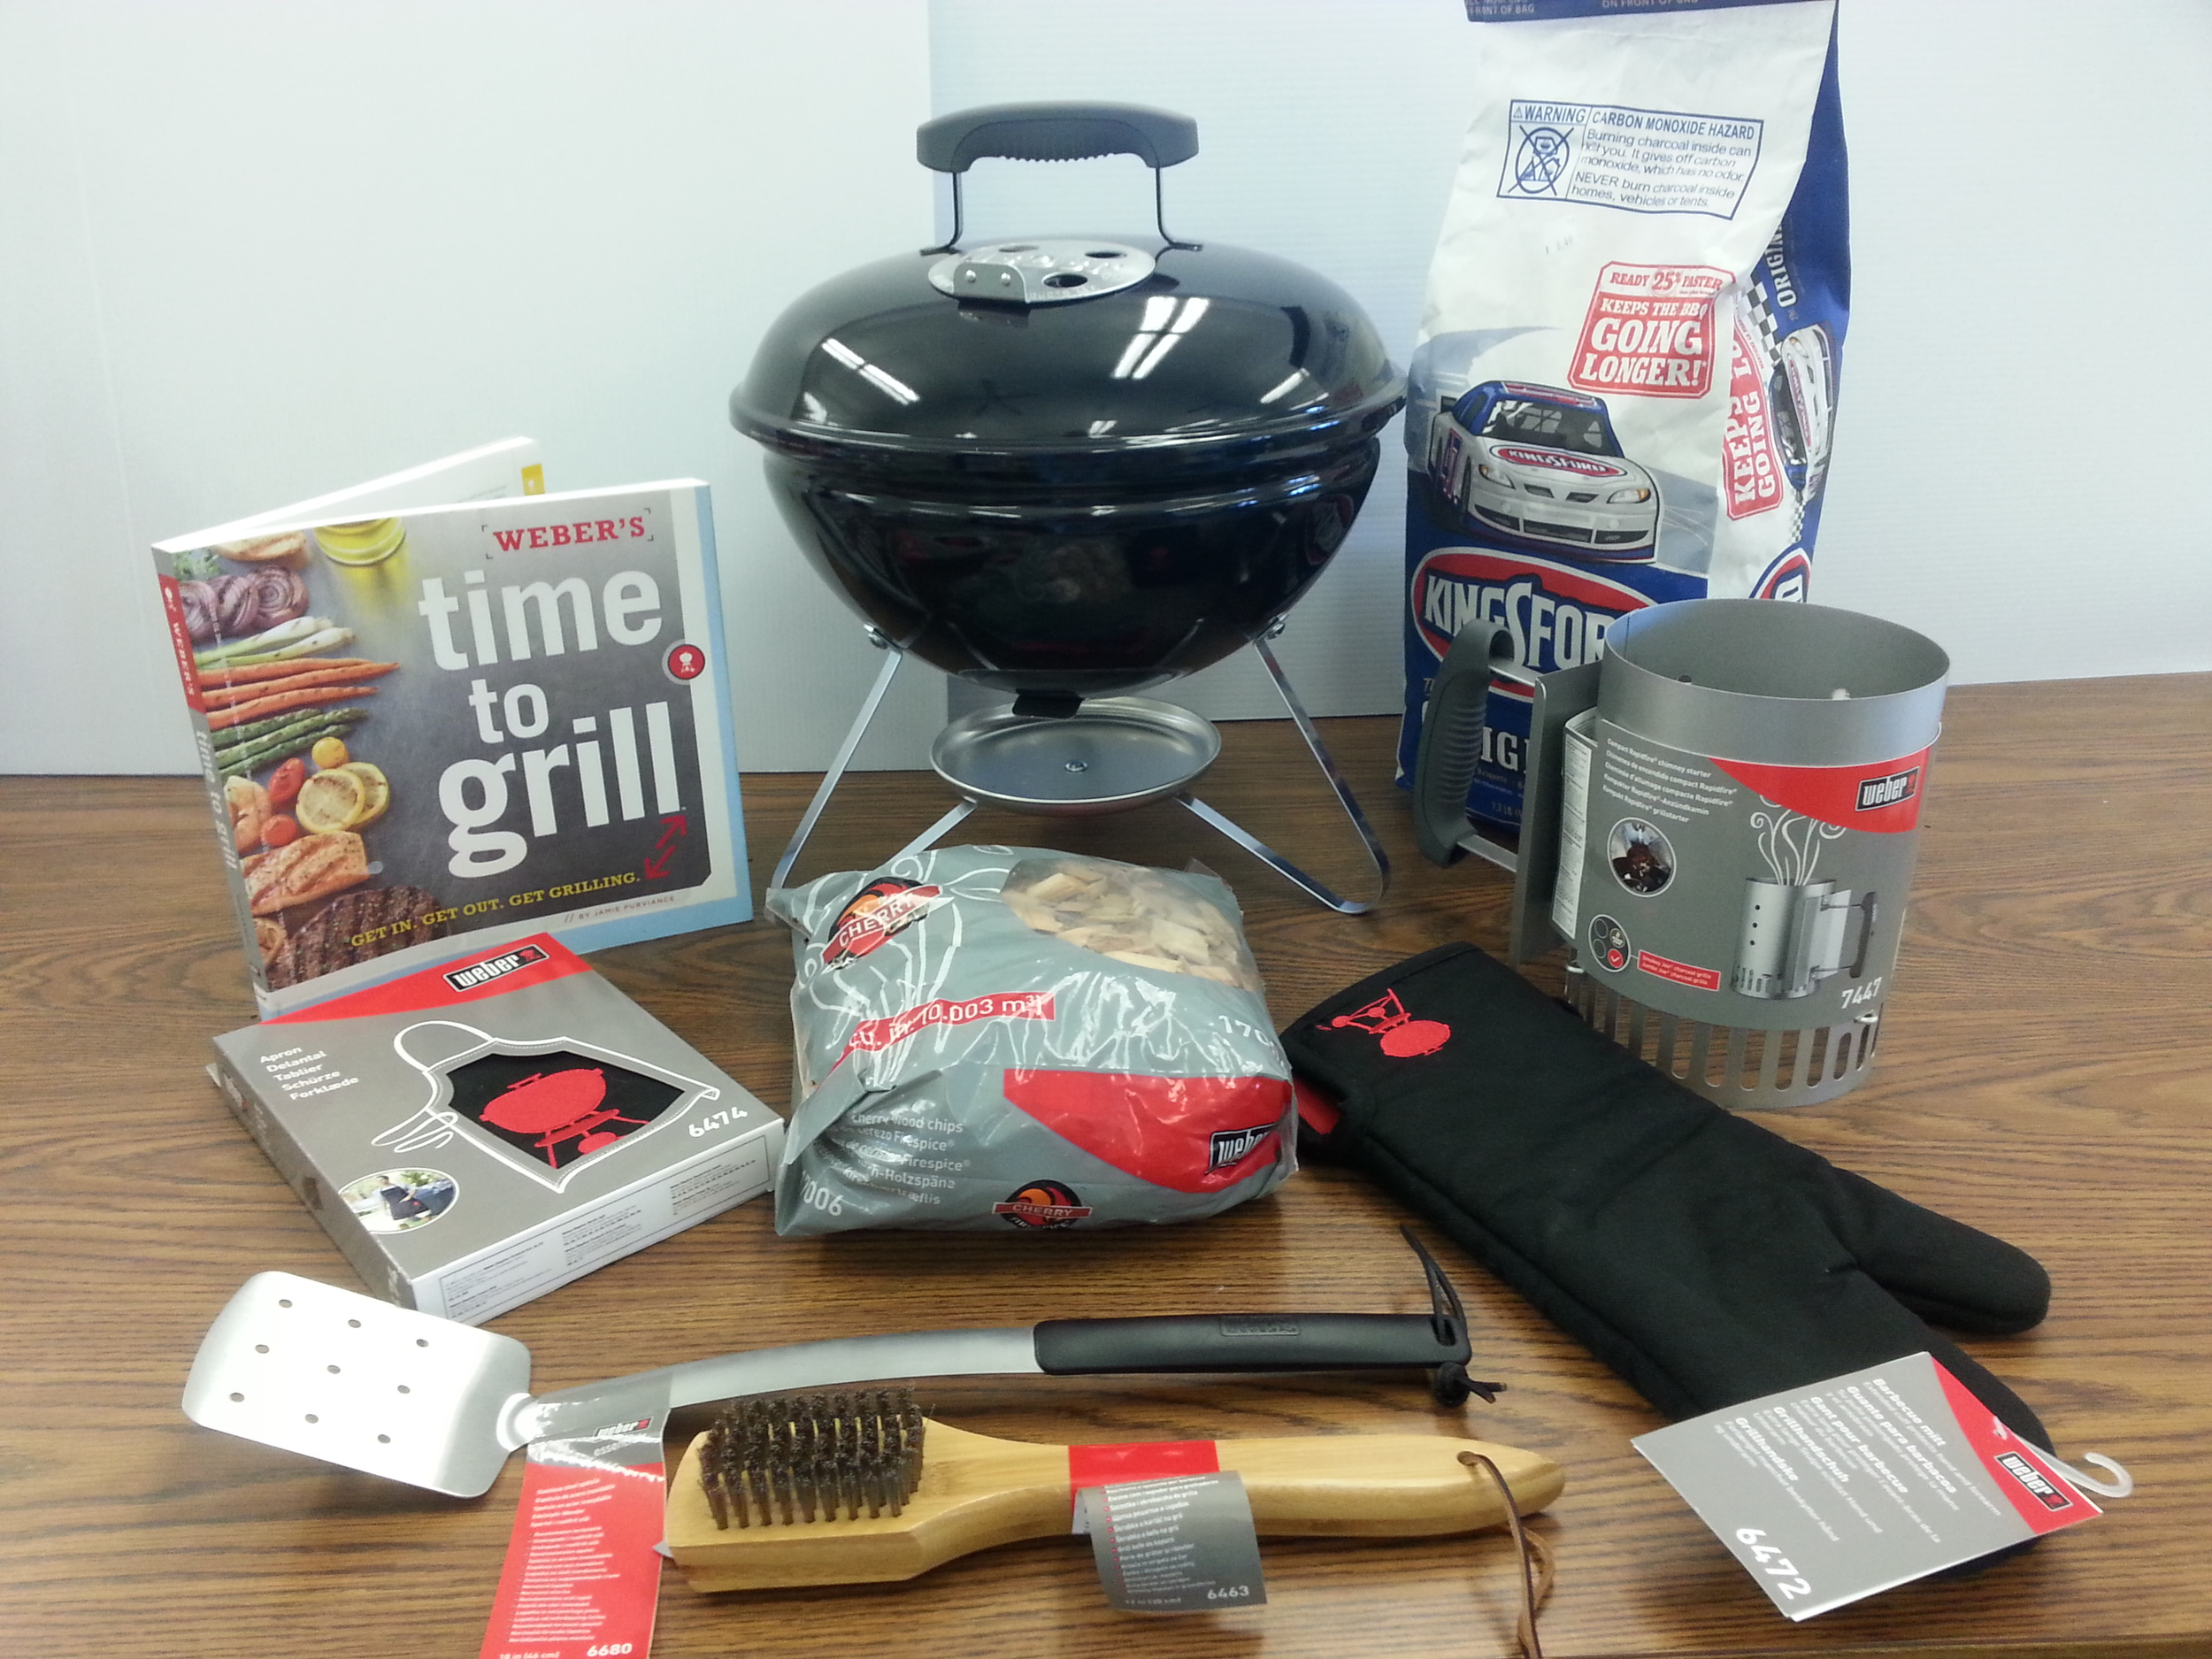 #7: Time to Grill